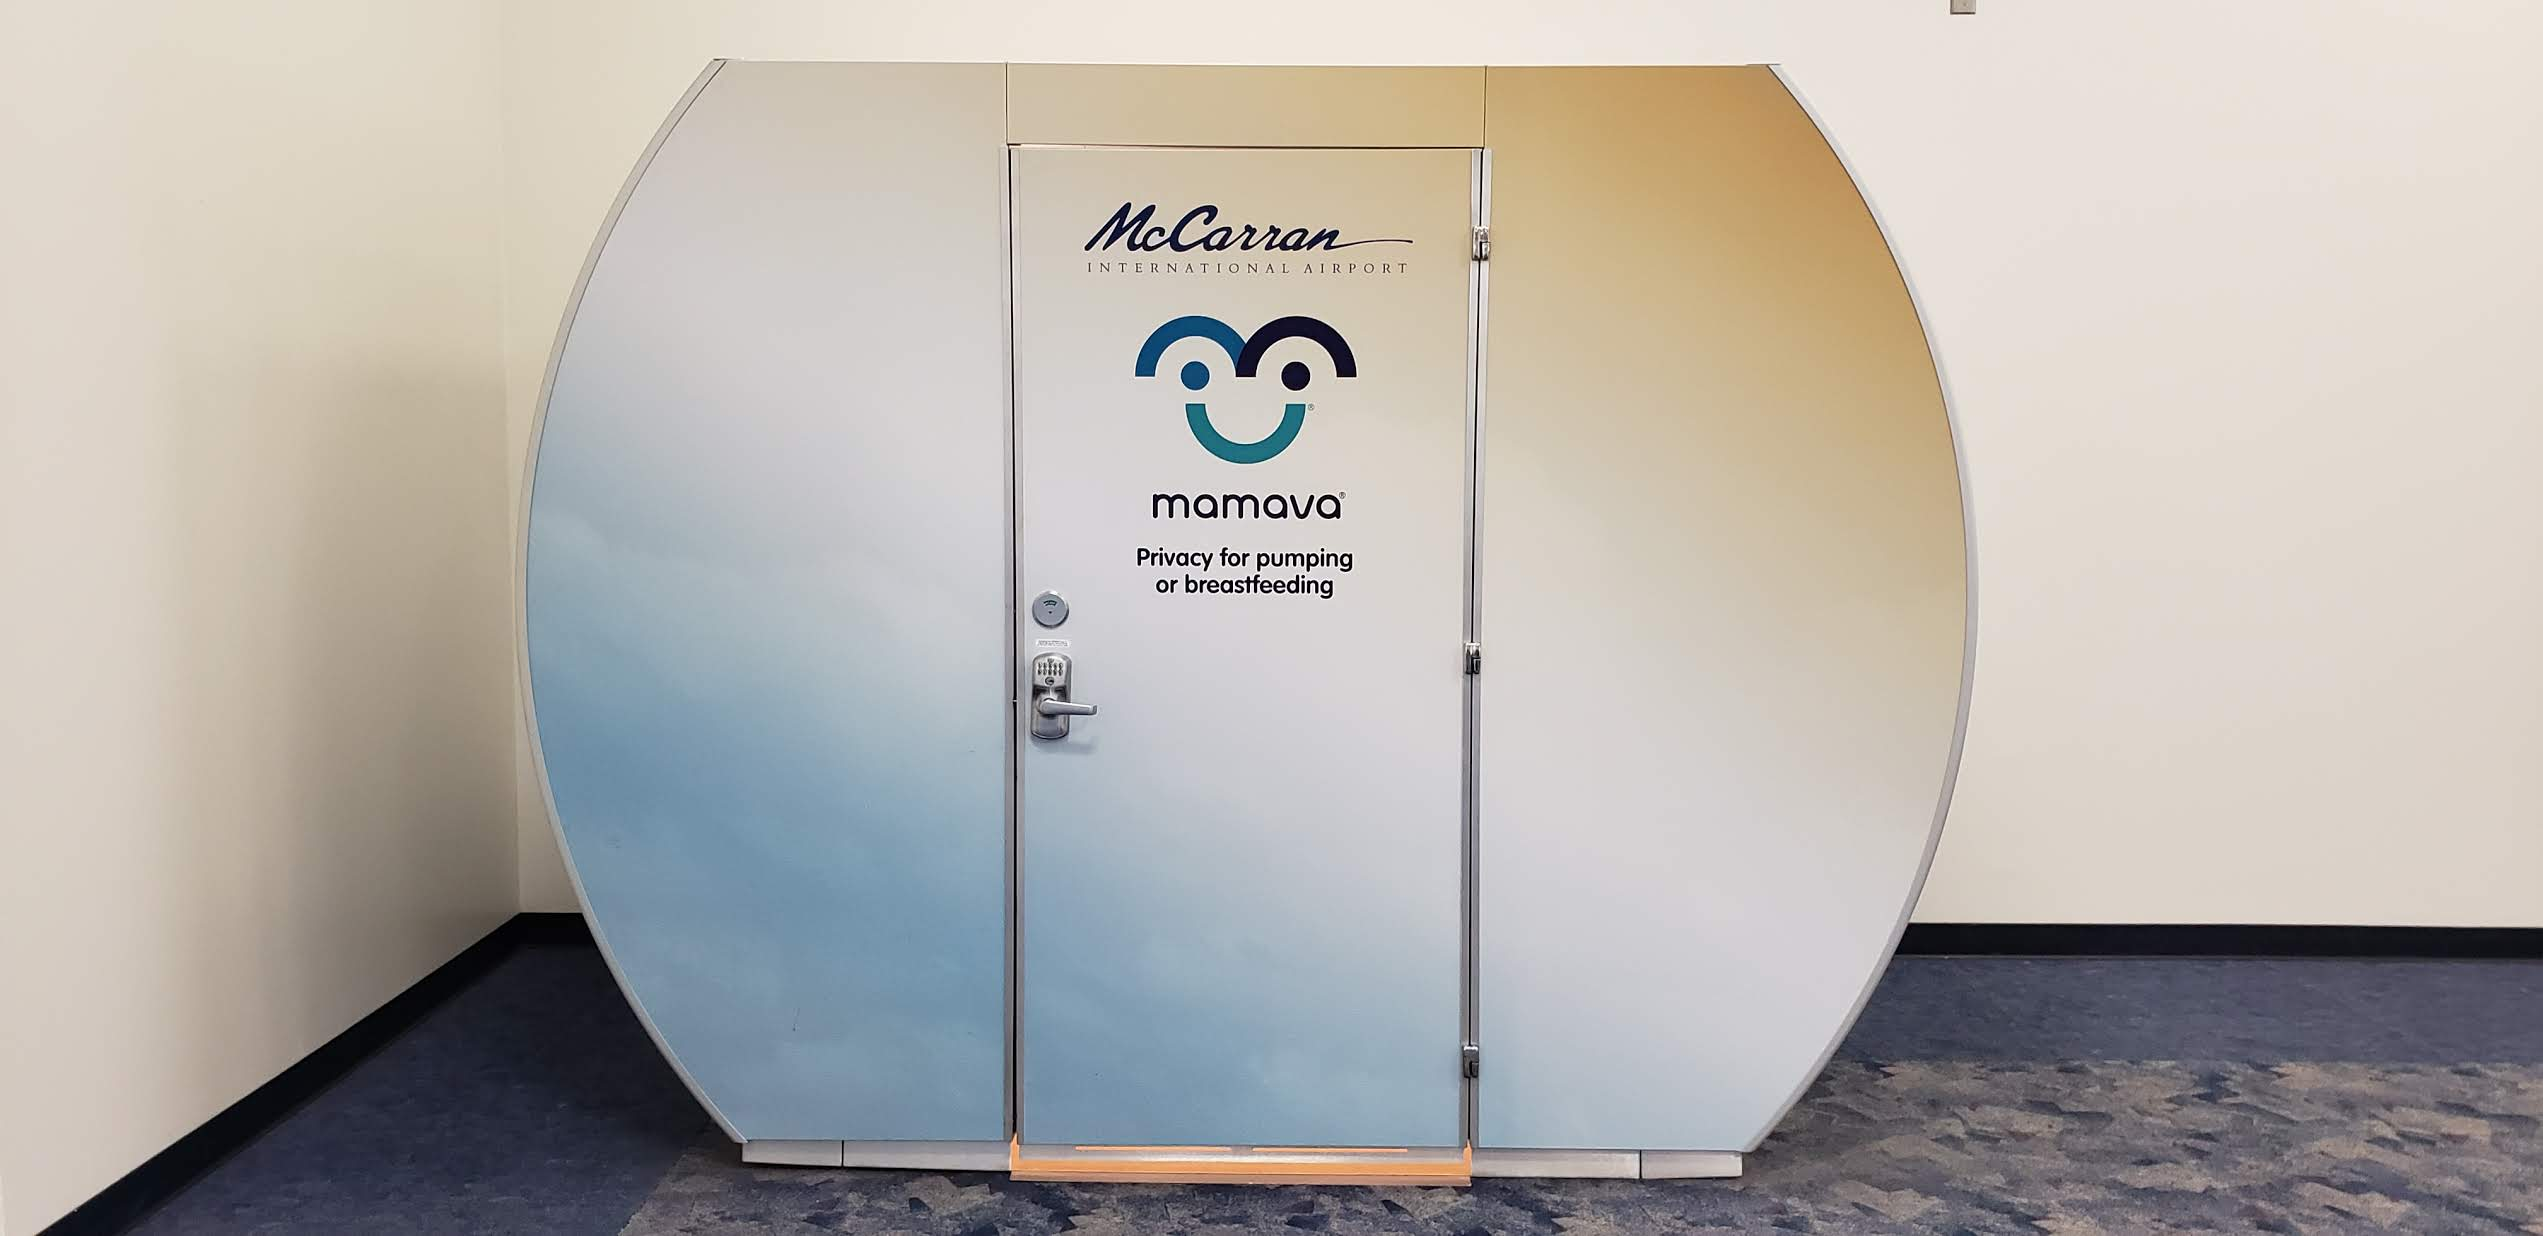 Many airports offer nursing pods